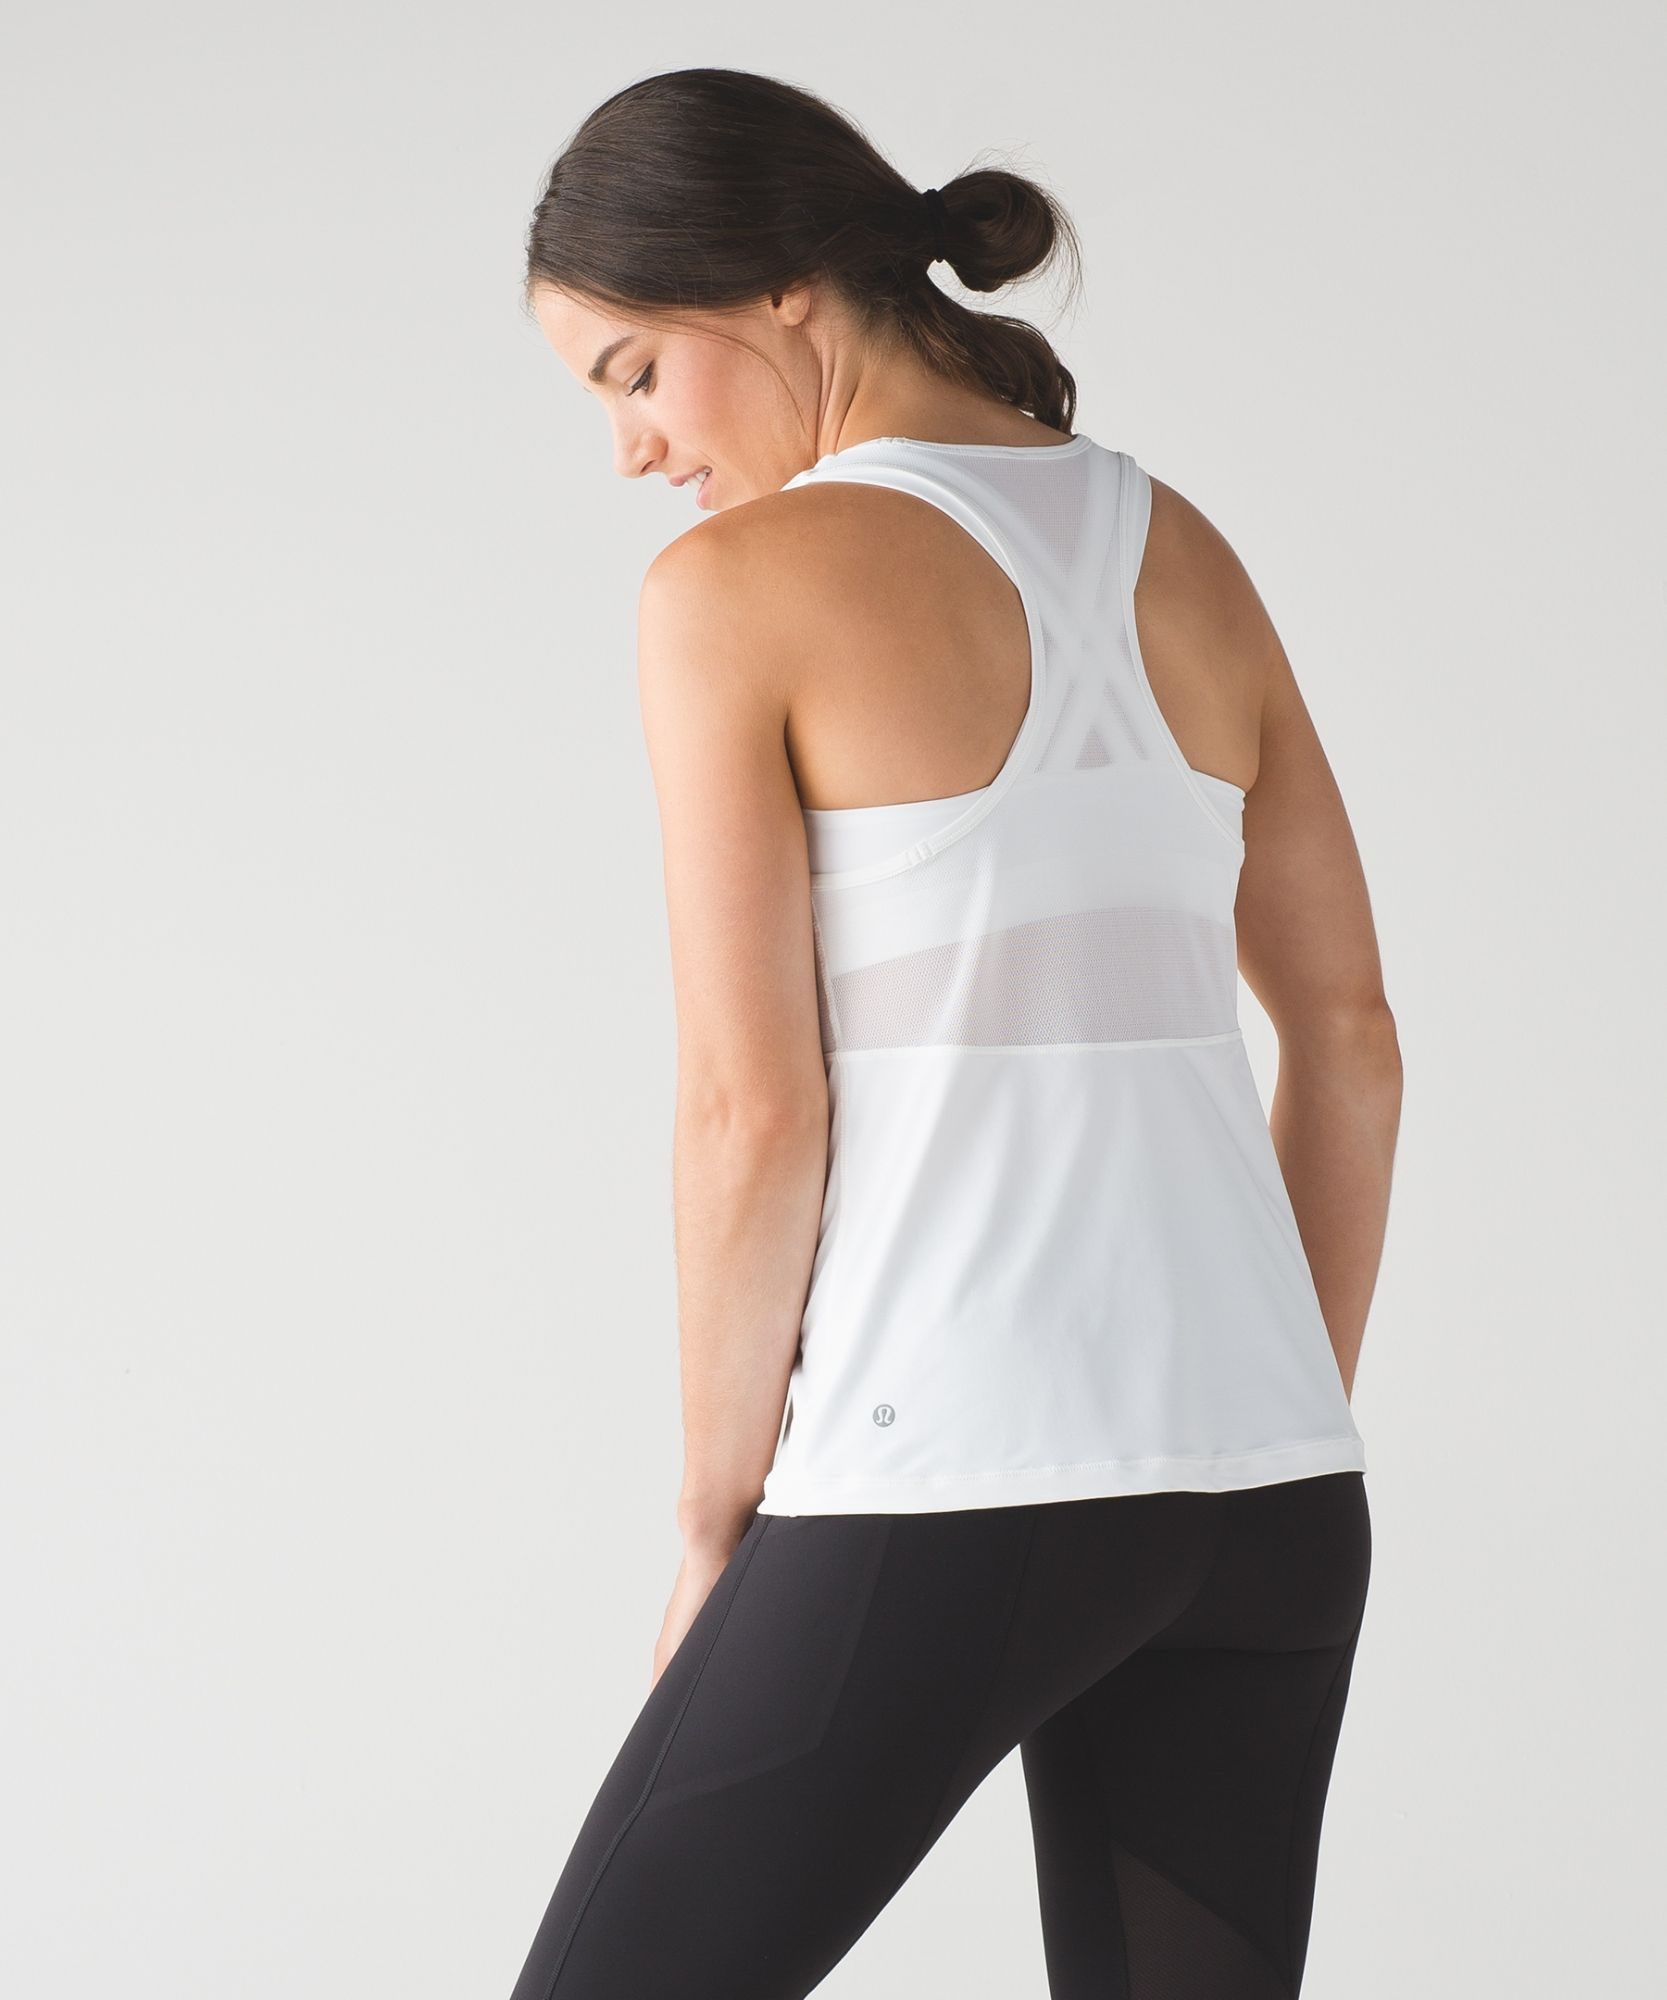 All ventilation all the time—this lightweight tank with built-in bra was designed for your sweatiest workouts.